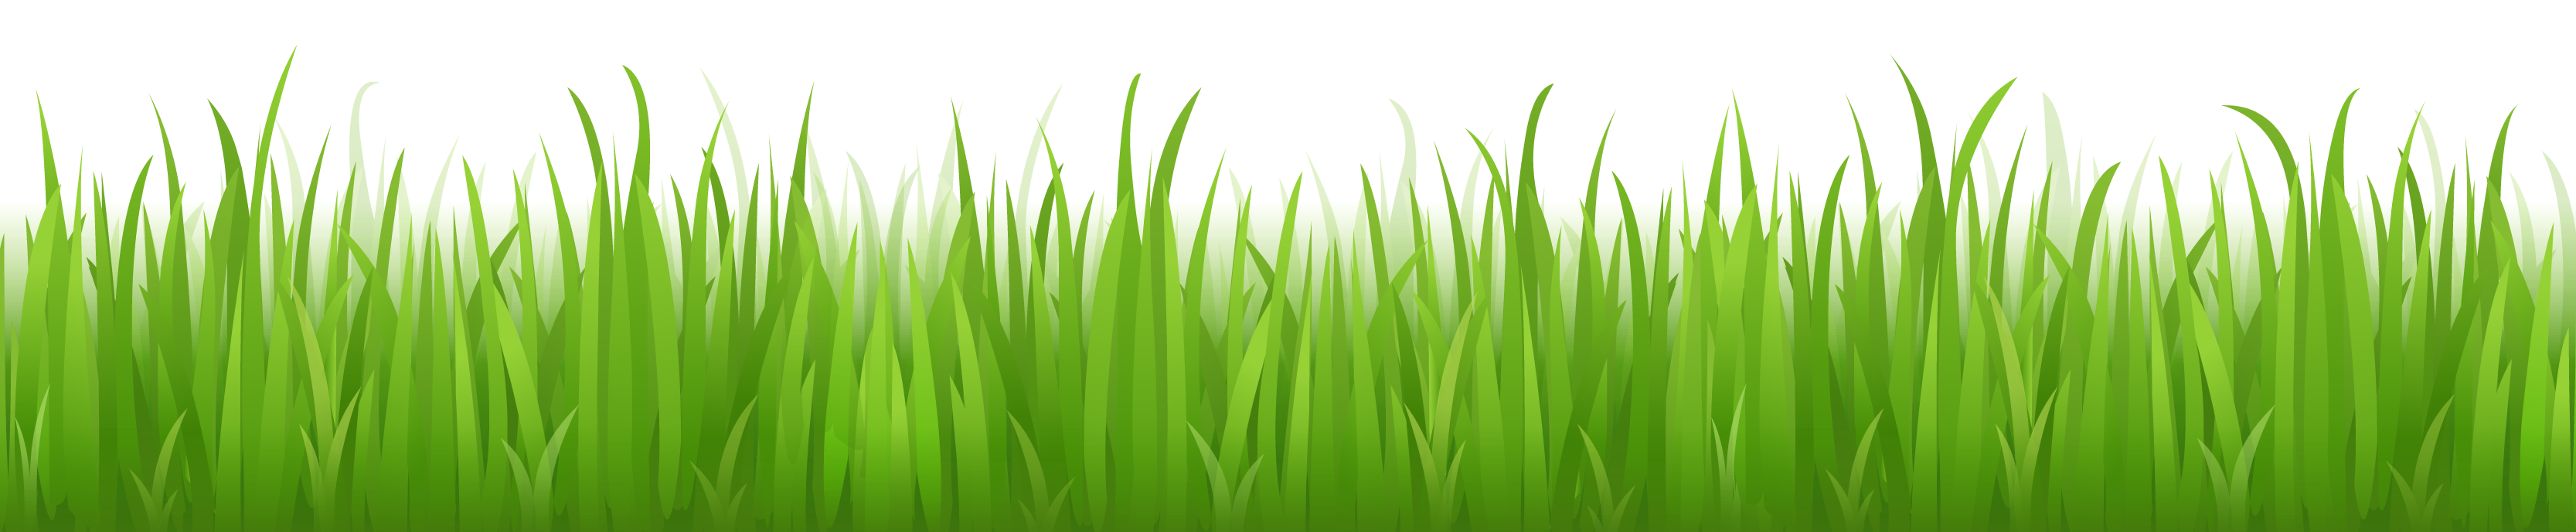 Grass PNG images, pictures.